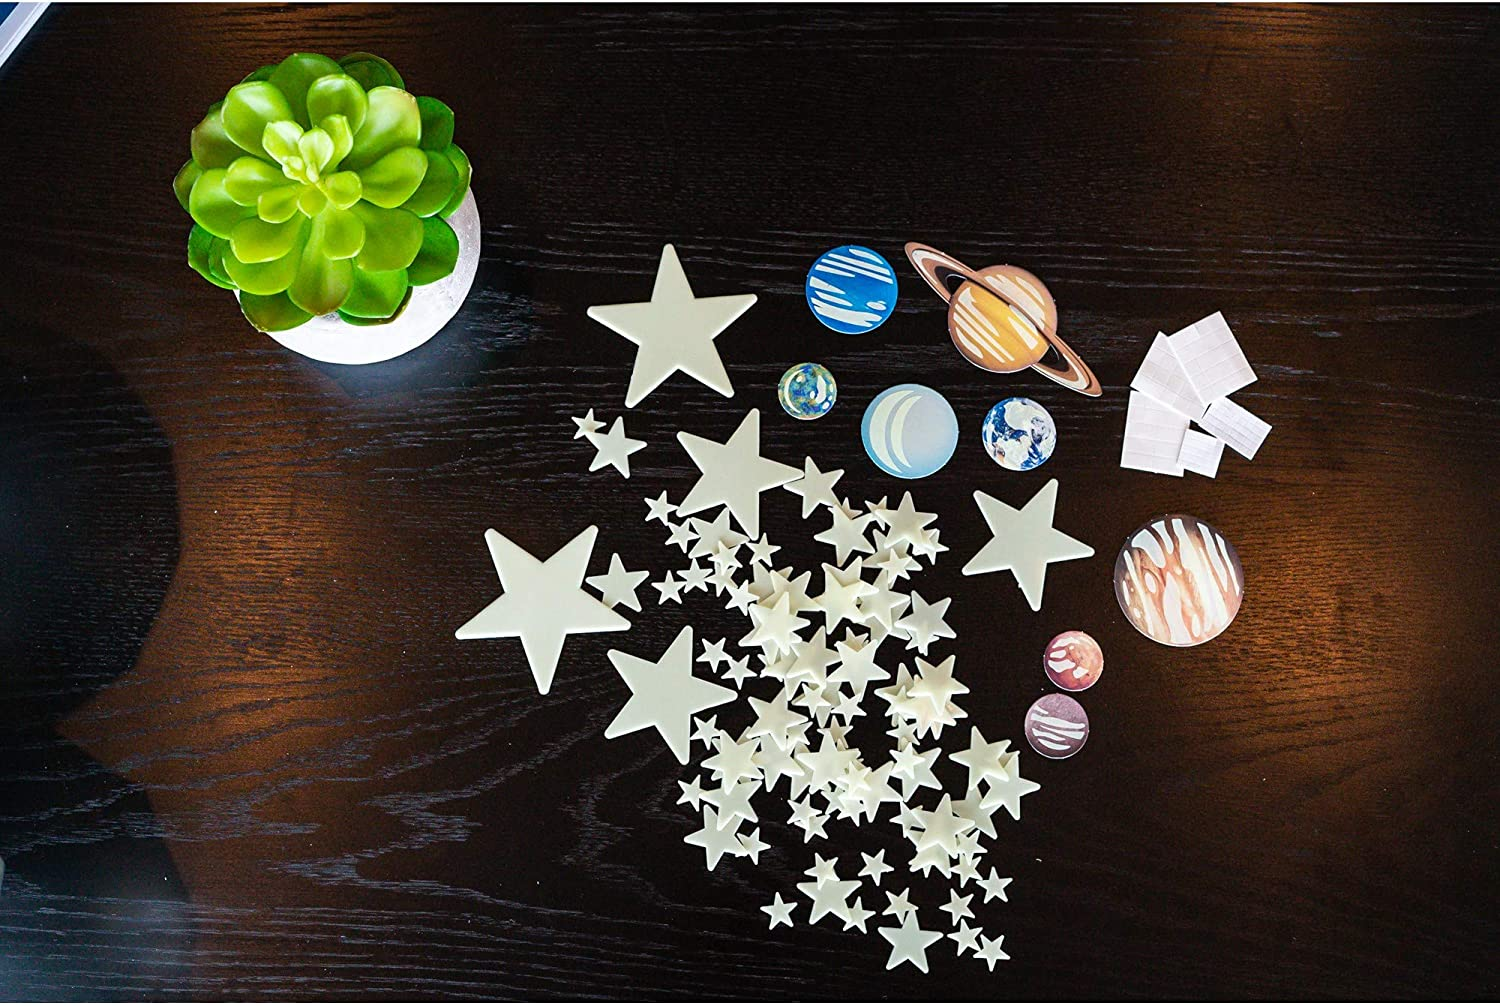 Boys /& Girls Astronomy Space Stem Toys Gift Room D/écor For Kids /& Teens Toysmith 4M Glow In The Dark Planets /& Supernova